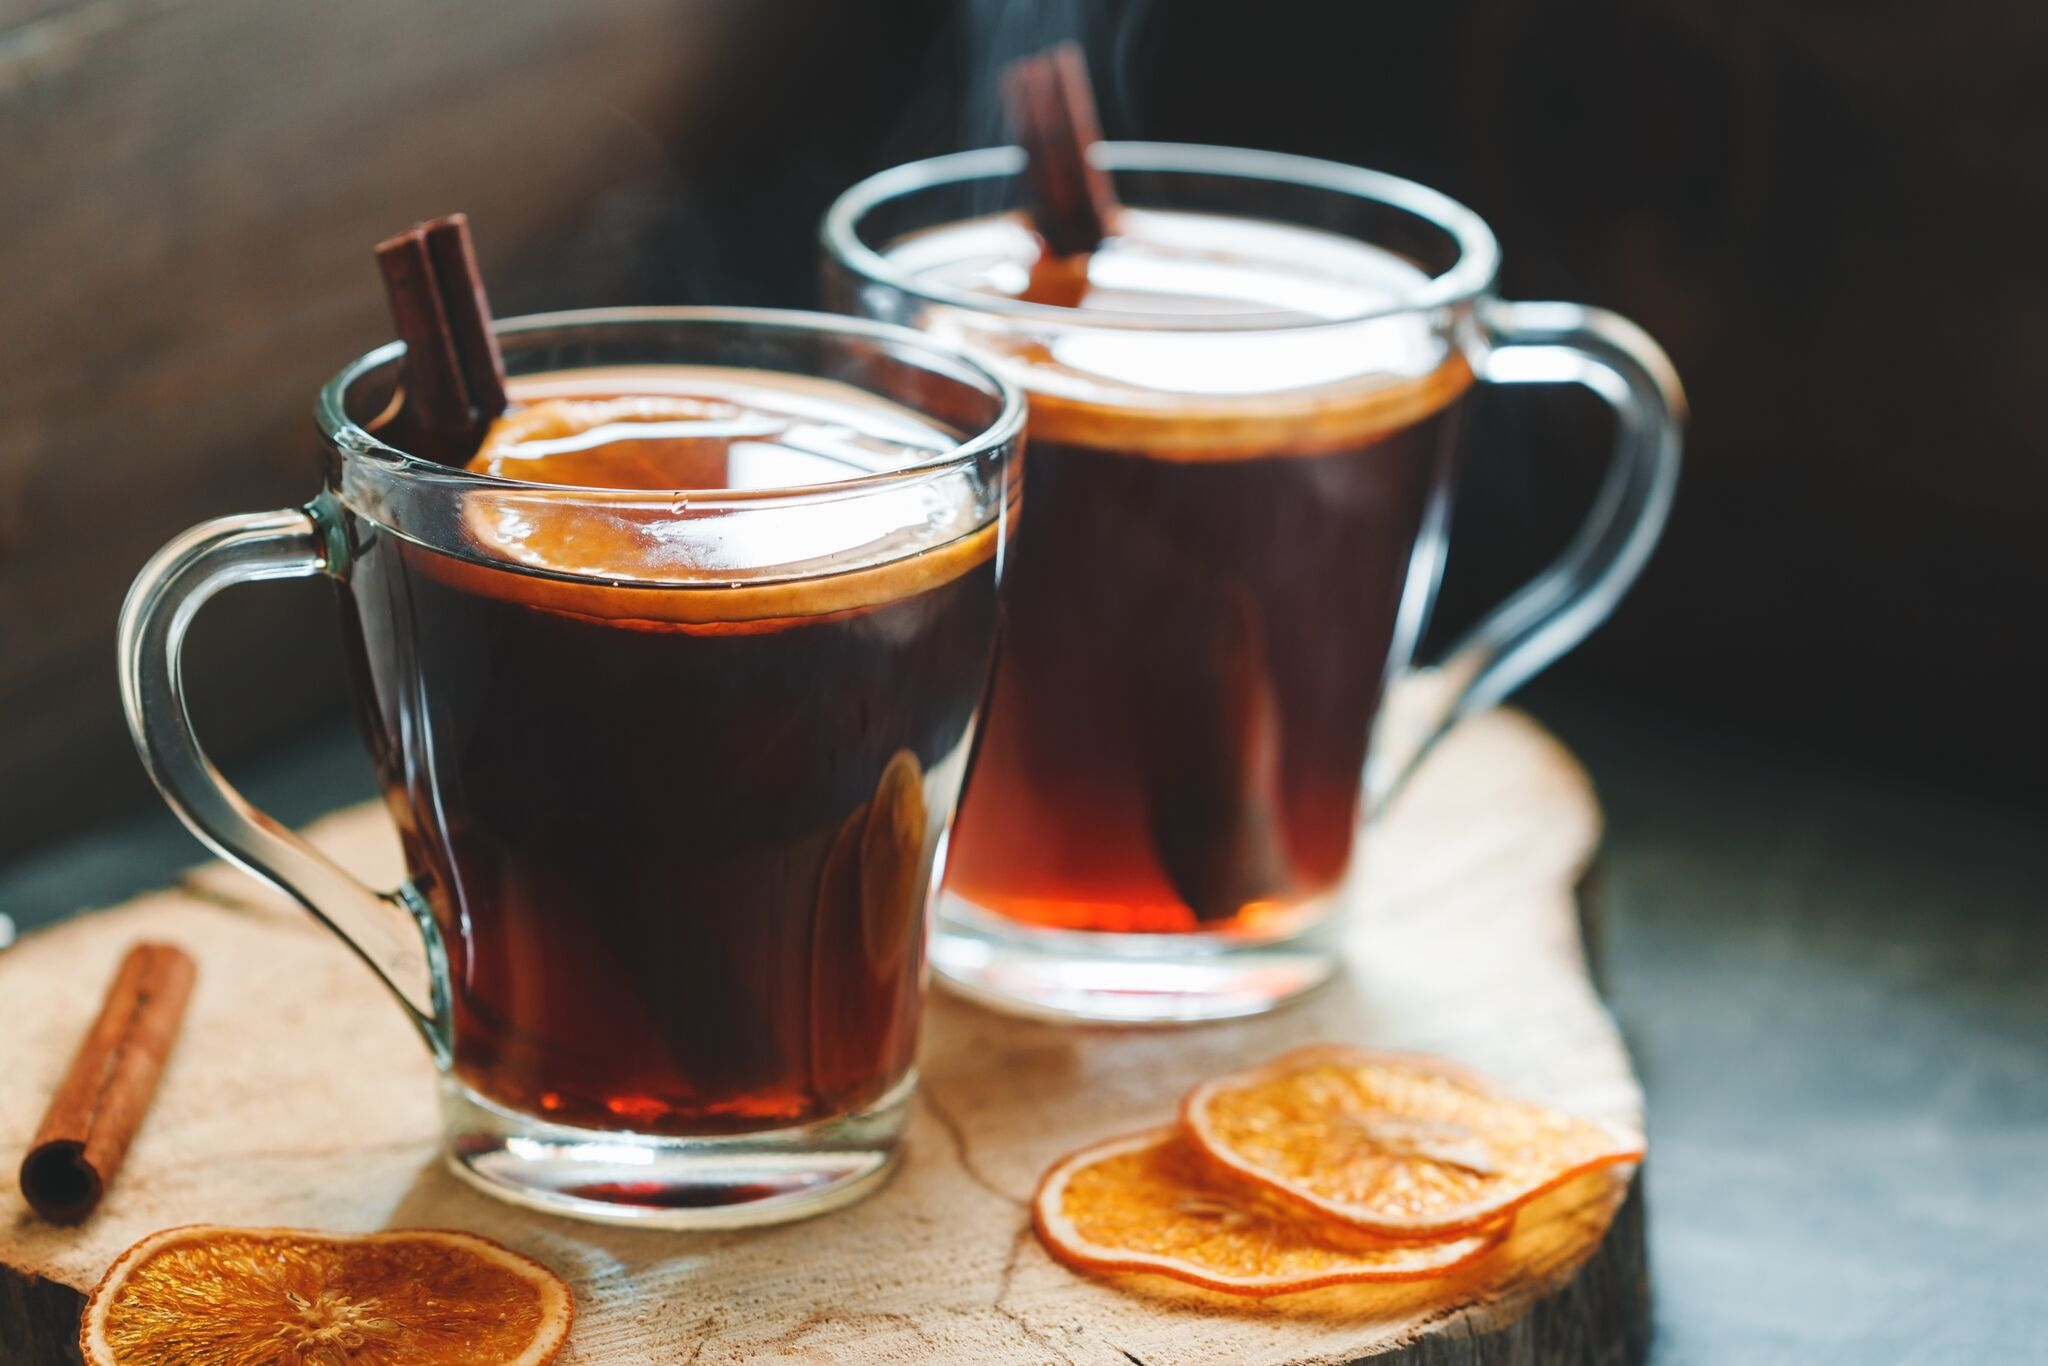 mulled-wine-recipe-3510986-6_preview-5aff42290e23d9003731e07f